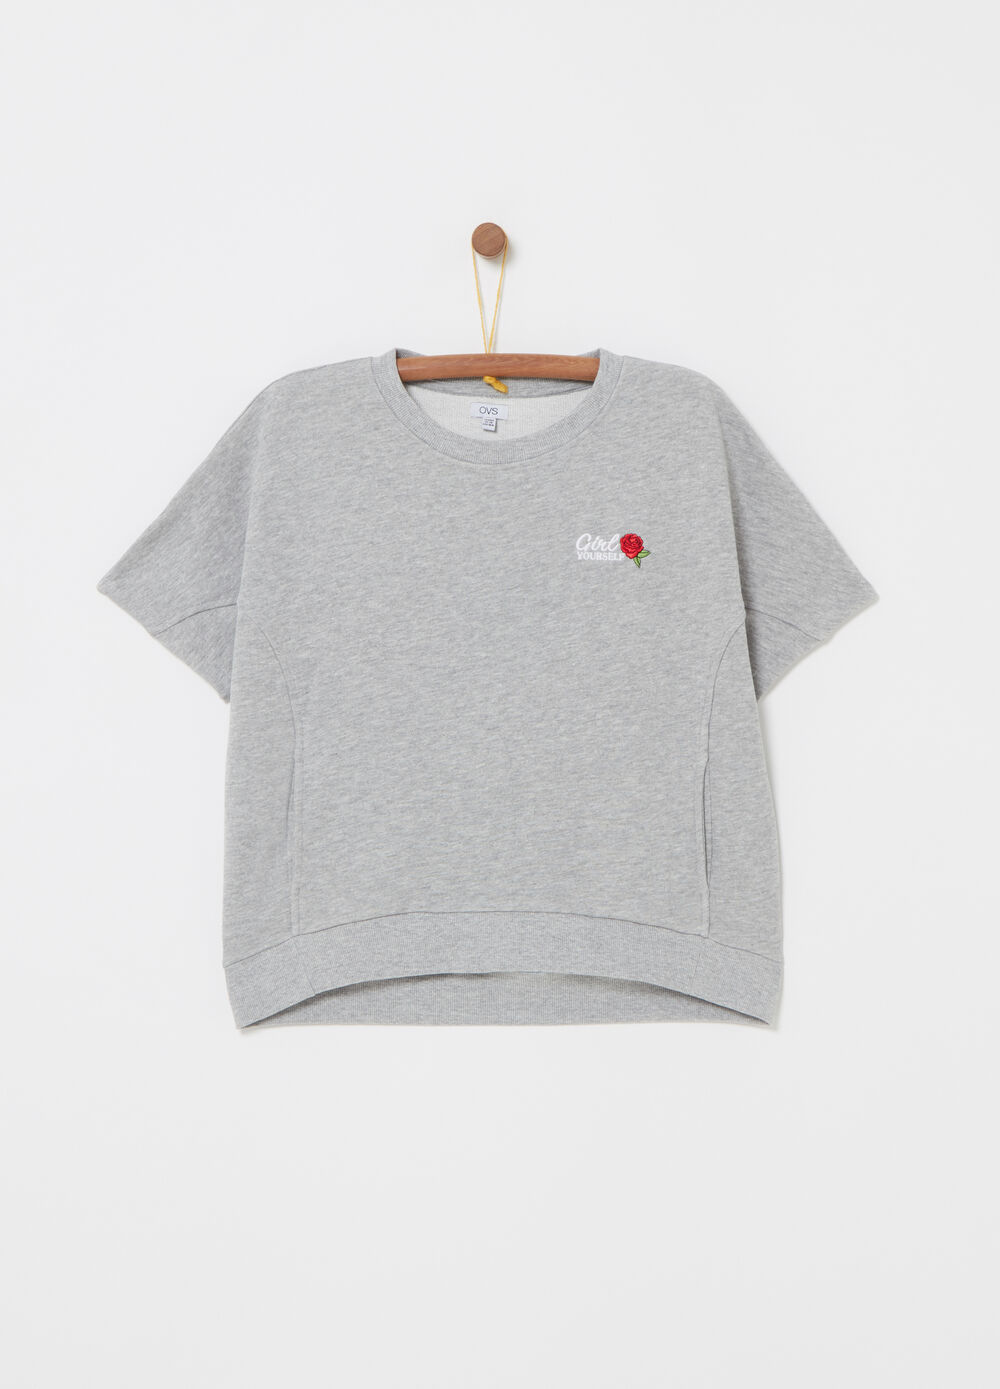 Mélange sweatshirt with short sleeves and embroidery